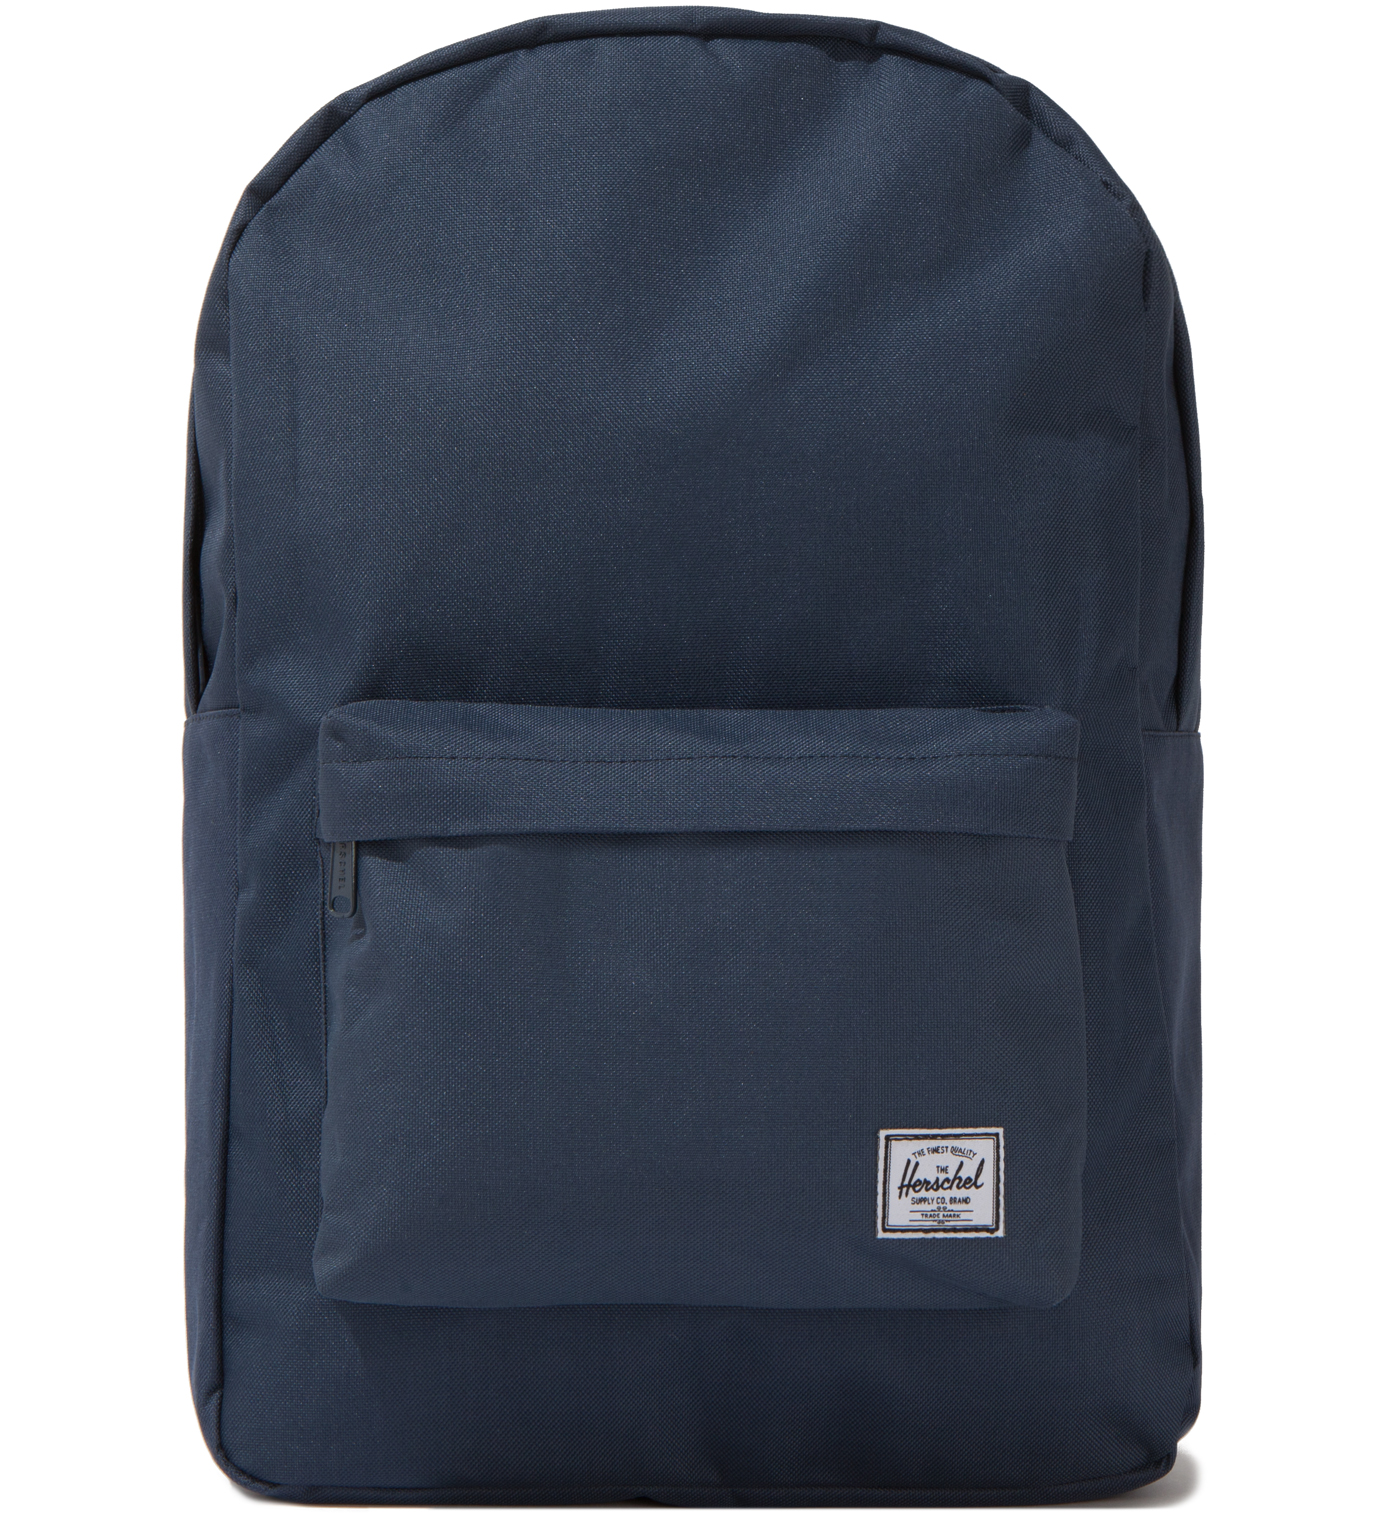 Herschel Supply Co. Navy Classic Backpack